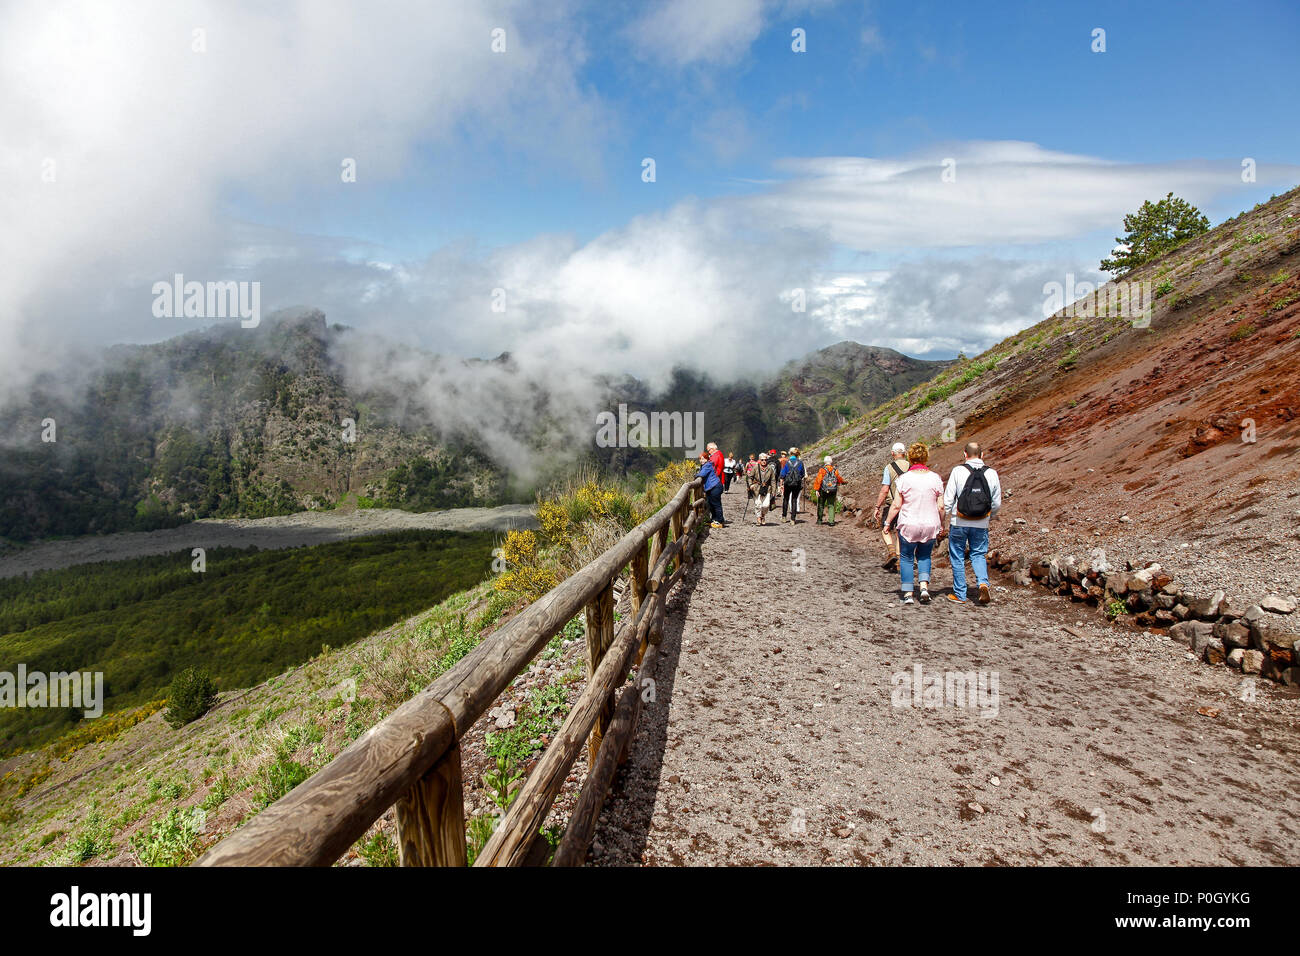 People walking up Vesuvius, Mount Vesuvius or Vesuvio, an active volcano that rises above the Bay of Naples on the plain of Campania in Italy - Stock Image